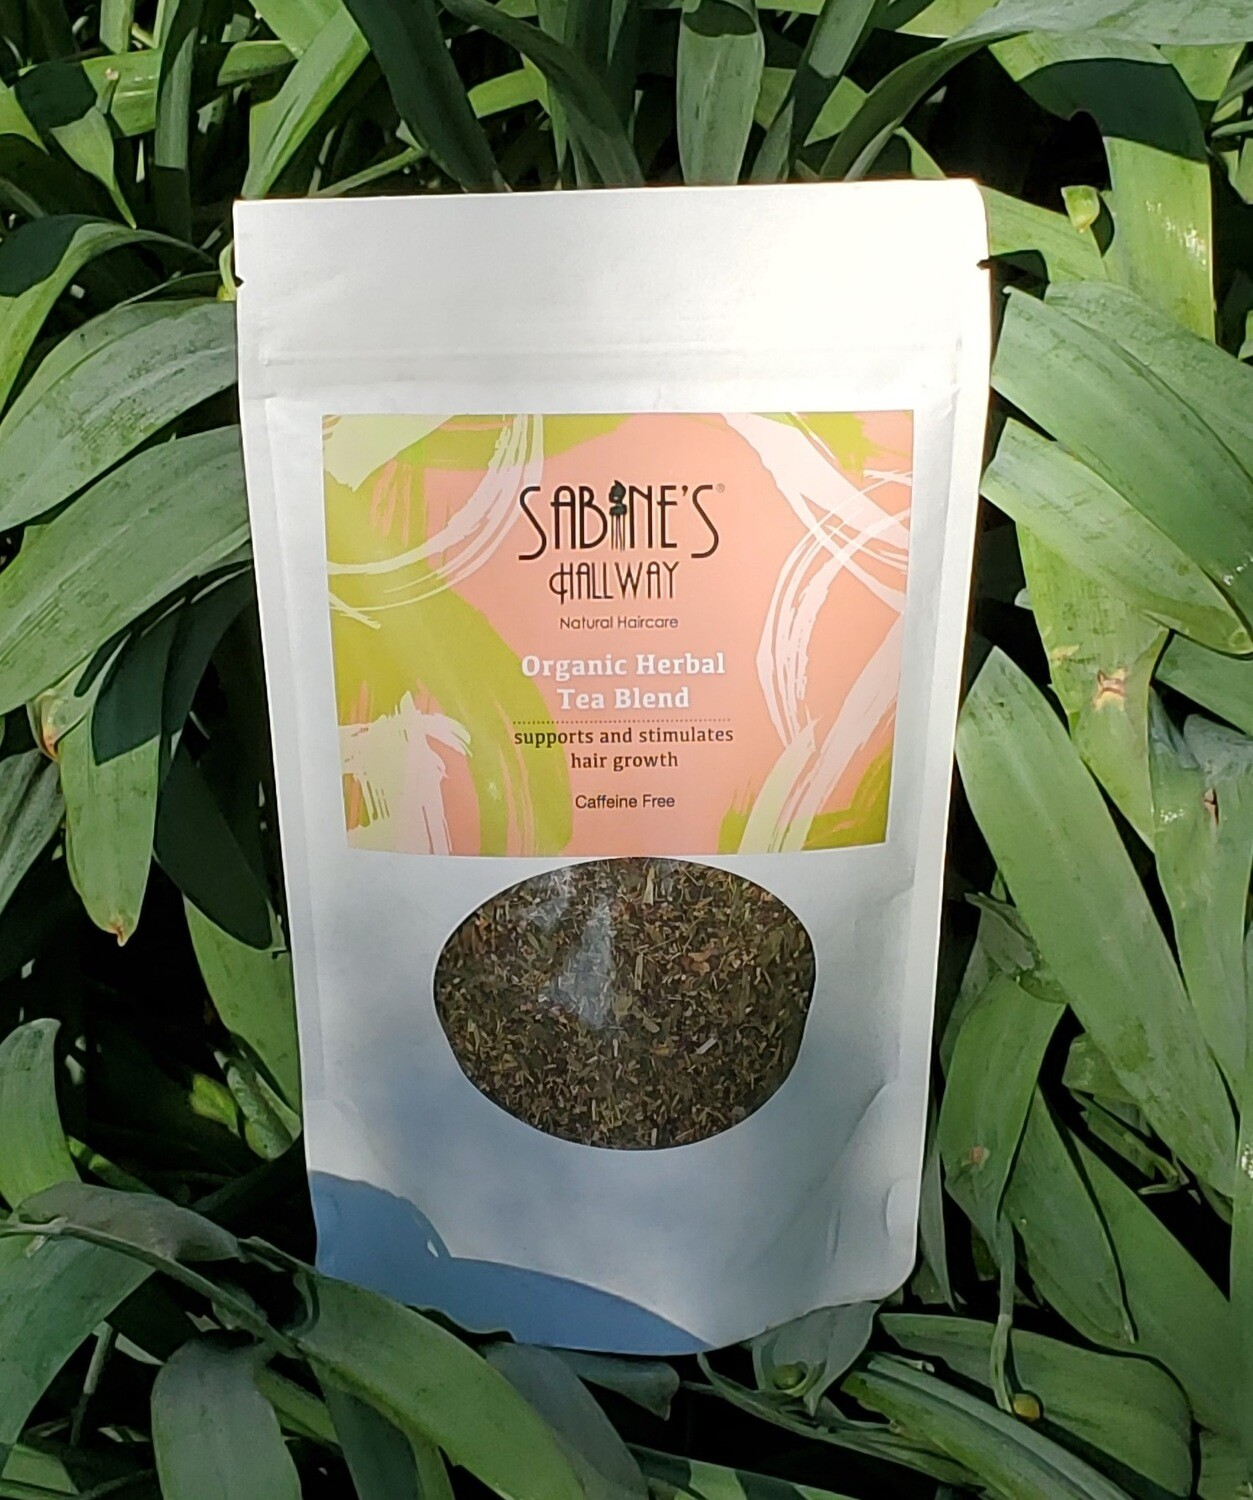 Organic Herbal Tea Blend